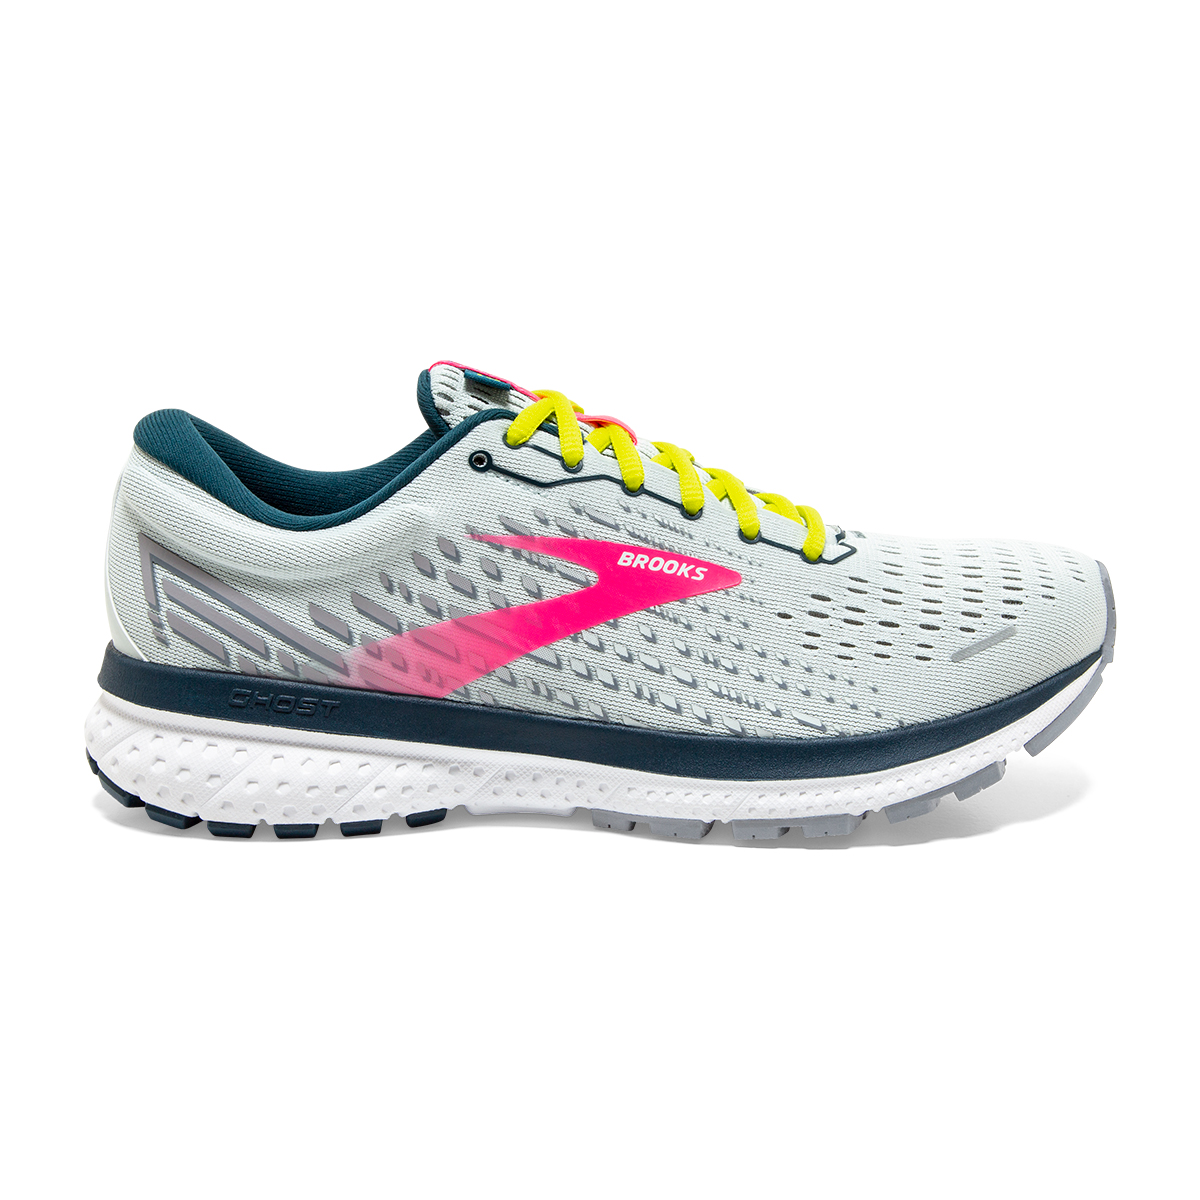 Women's Brooks Ghost 13 Running Shoes - Color: Ice Flow/Pink/Pond - Size: 5 - Width: Regular, Ice Flow/Pink/Pond, large, image 1